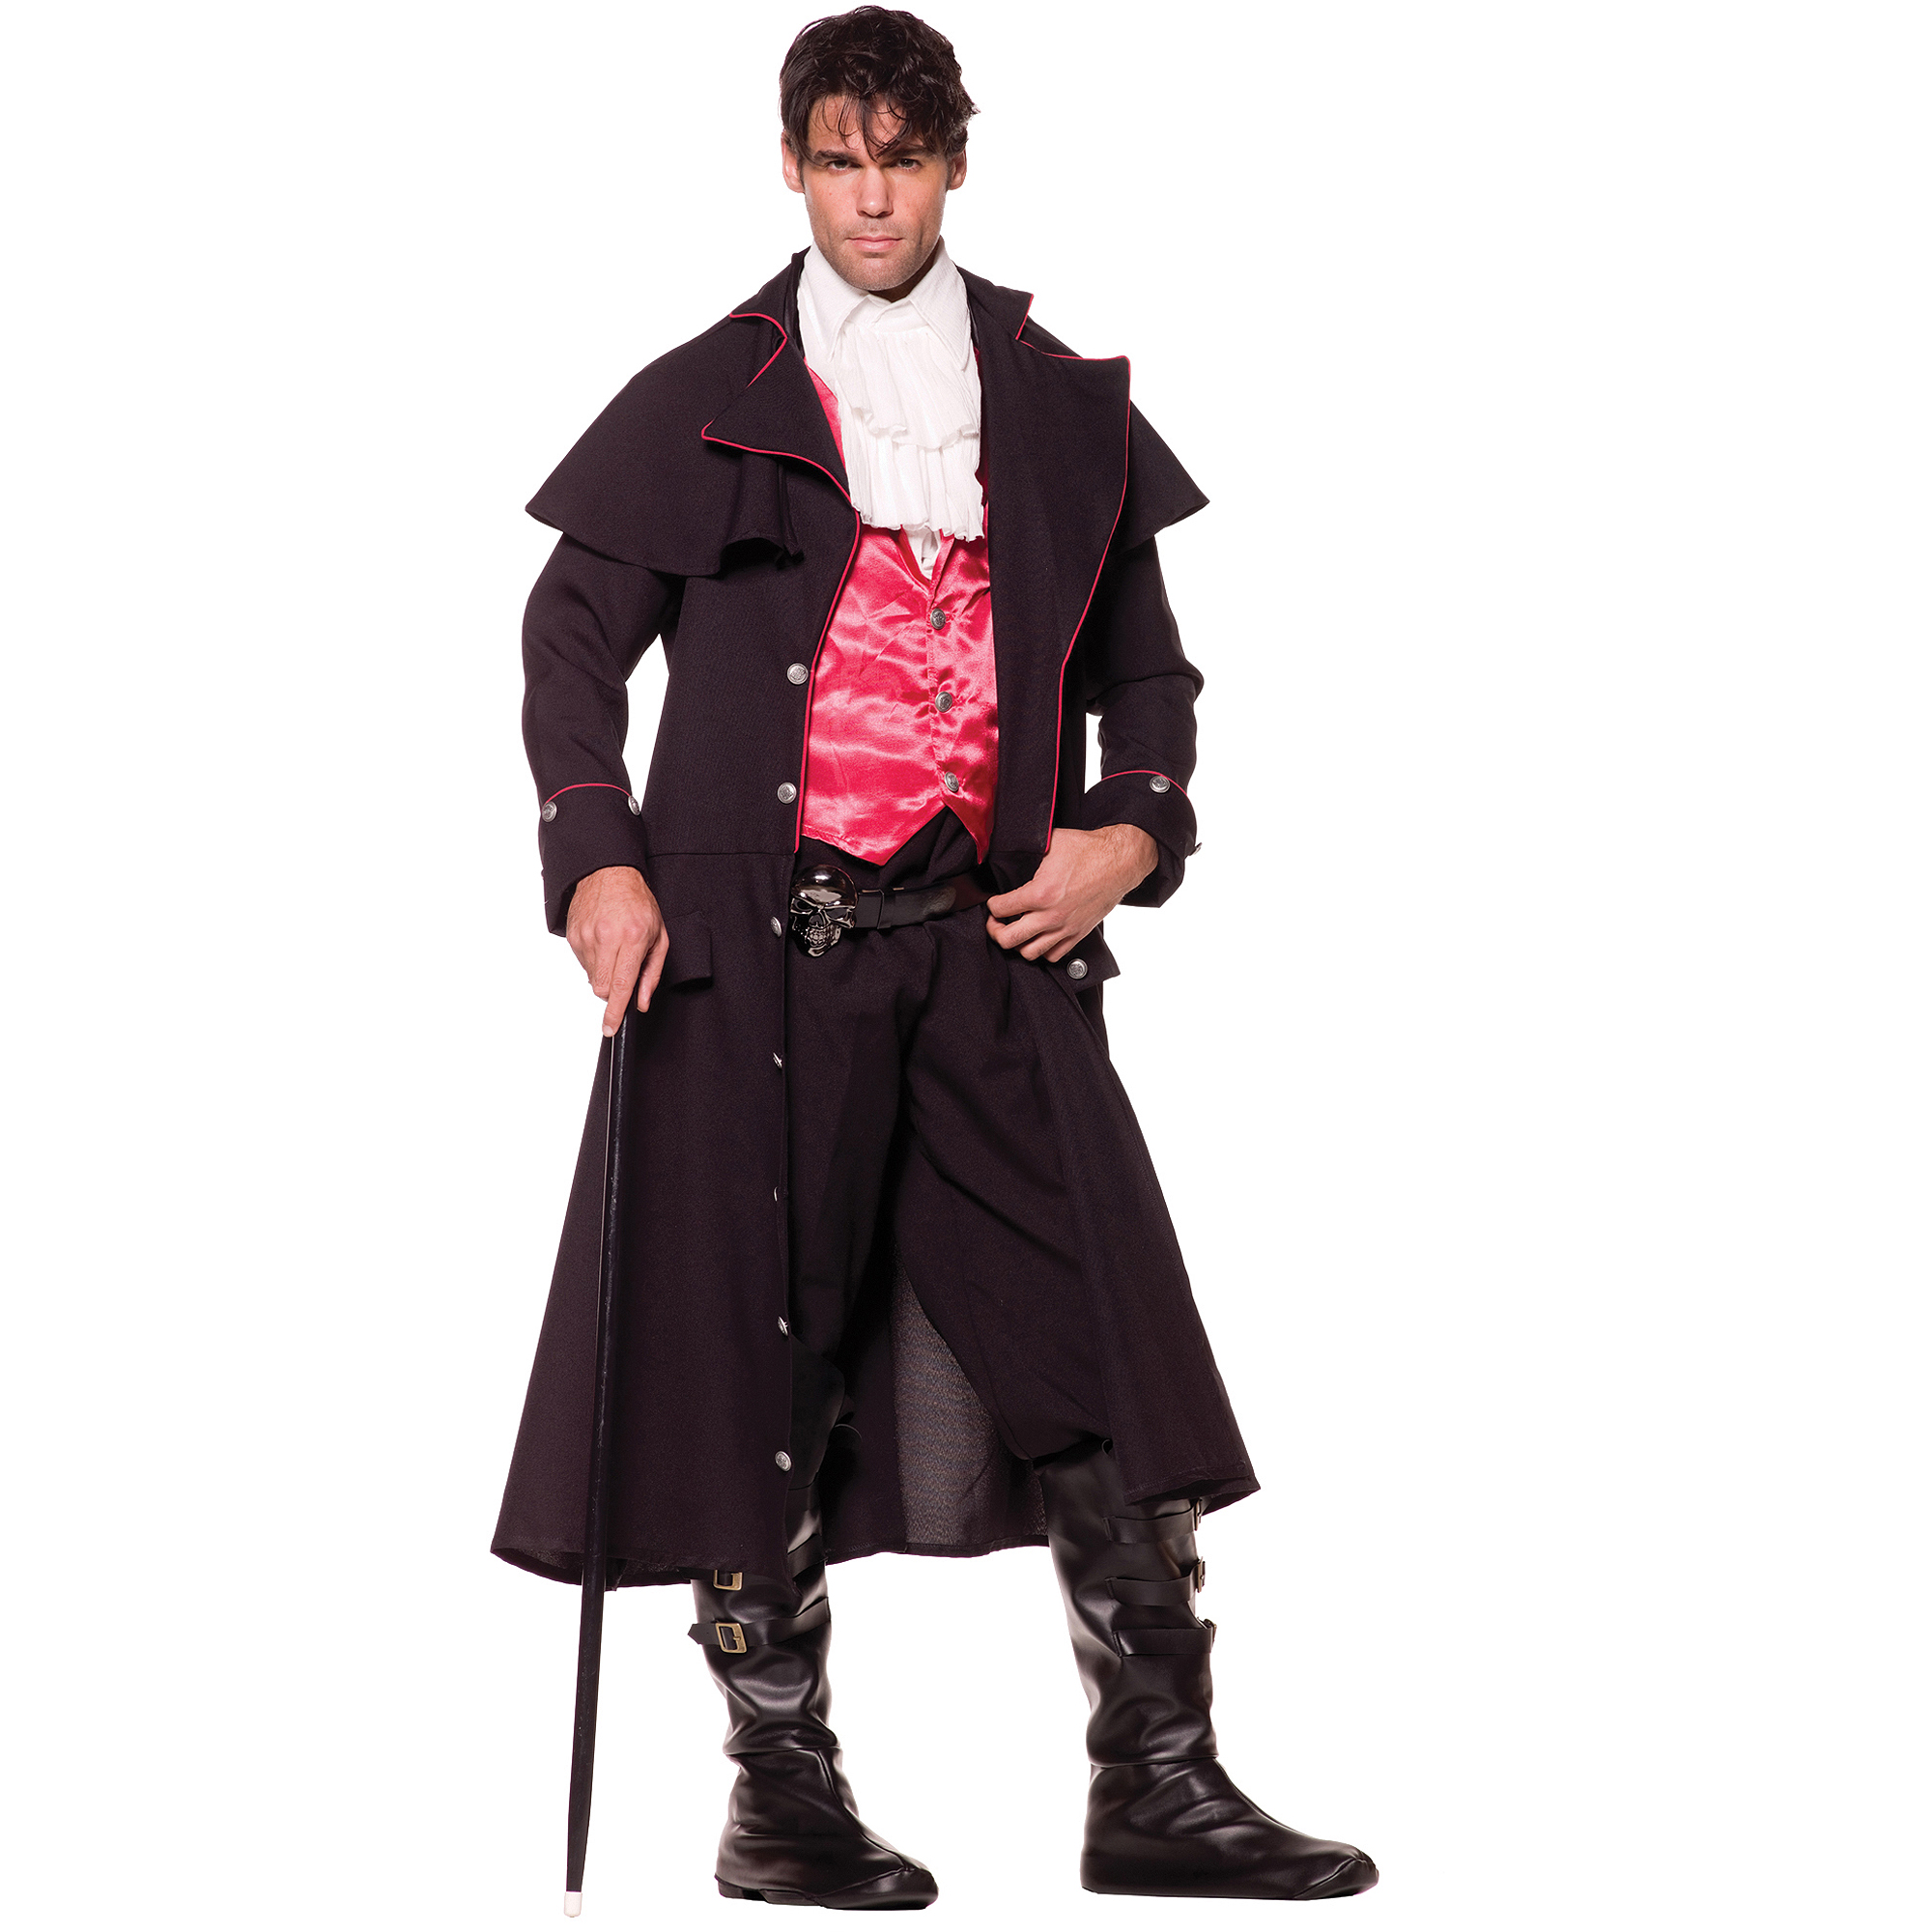 Count Adult Halloween Costume